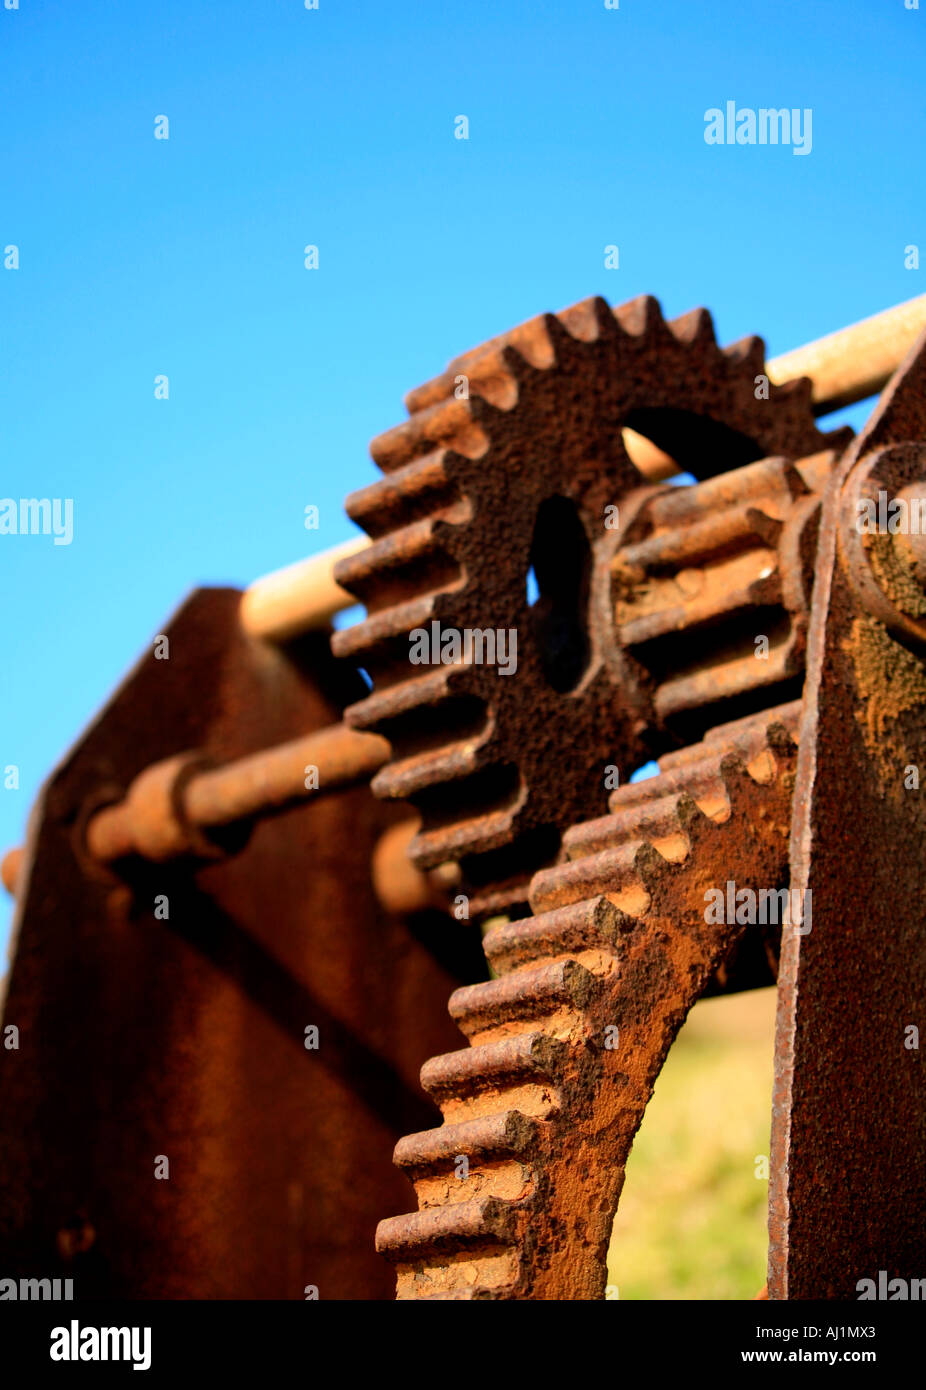 A rusted iron hand winch against a blue sky - Stock Image